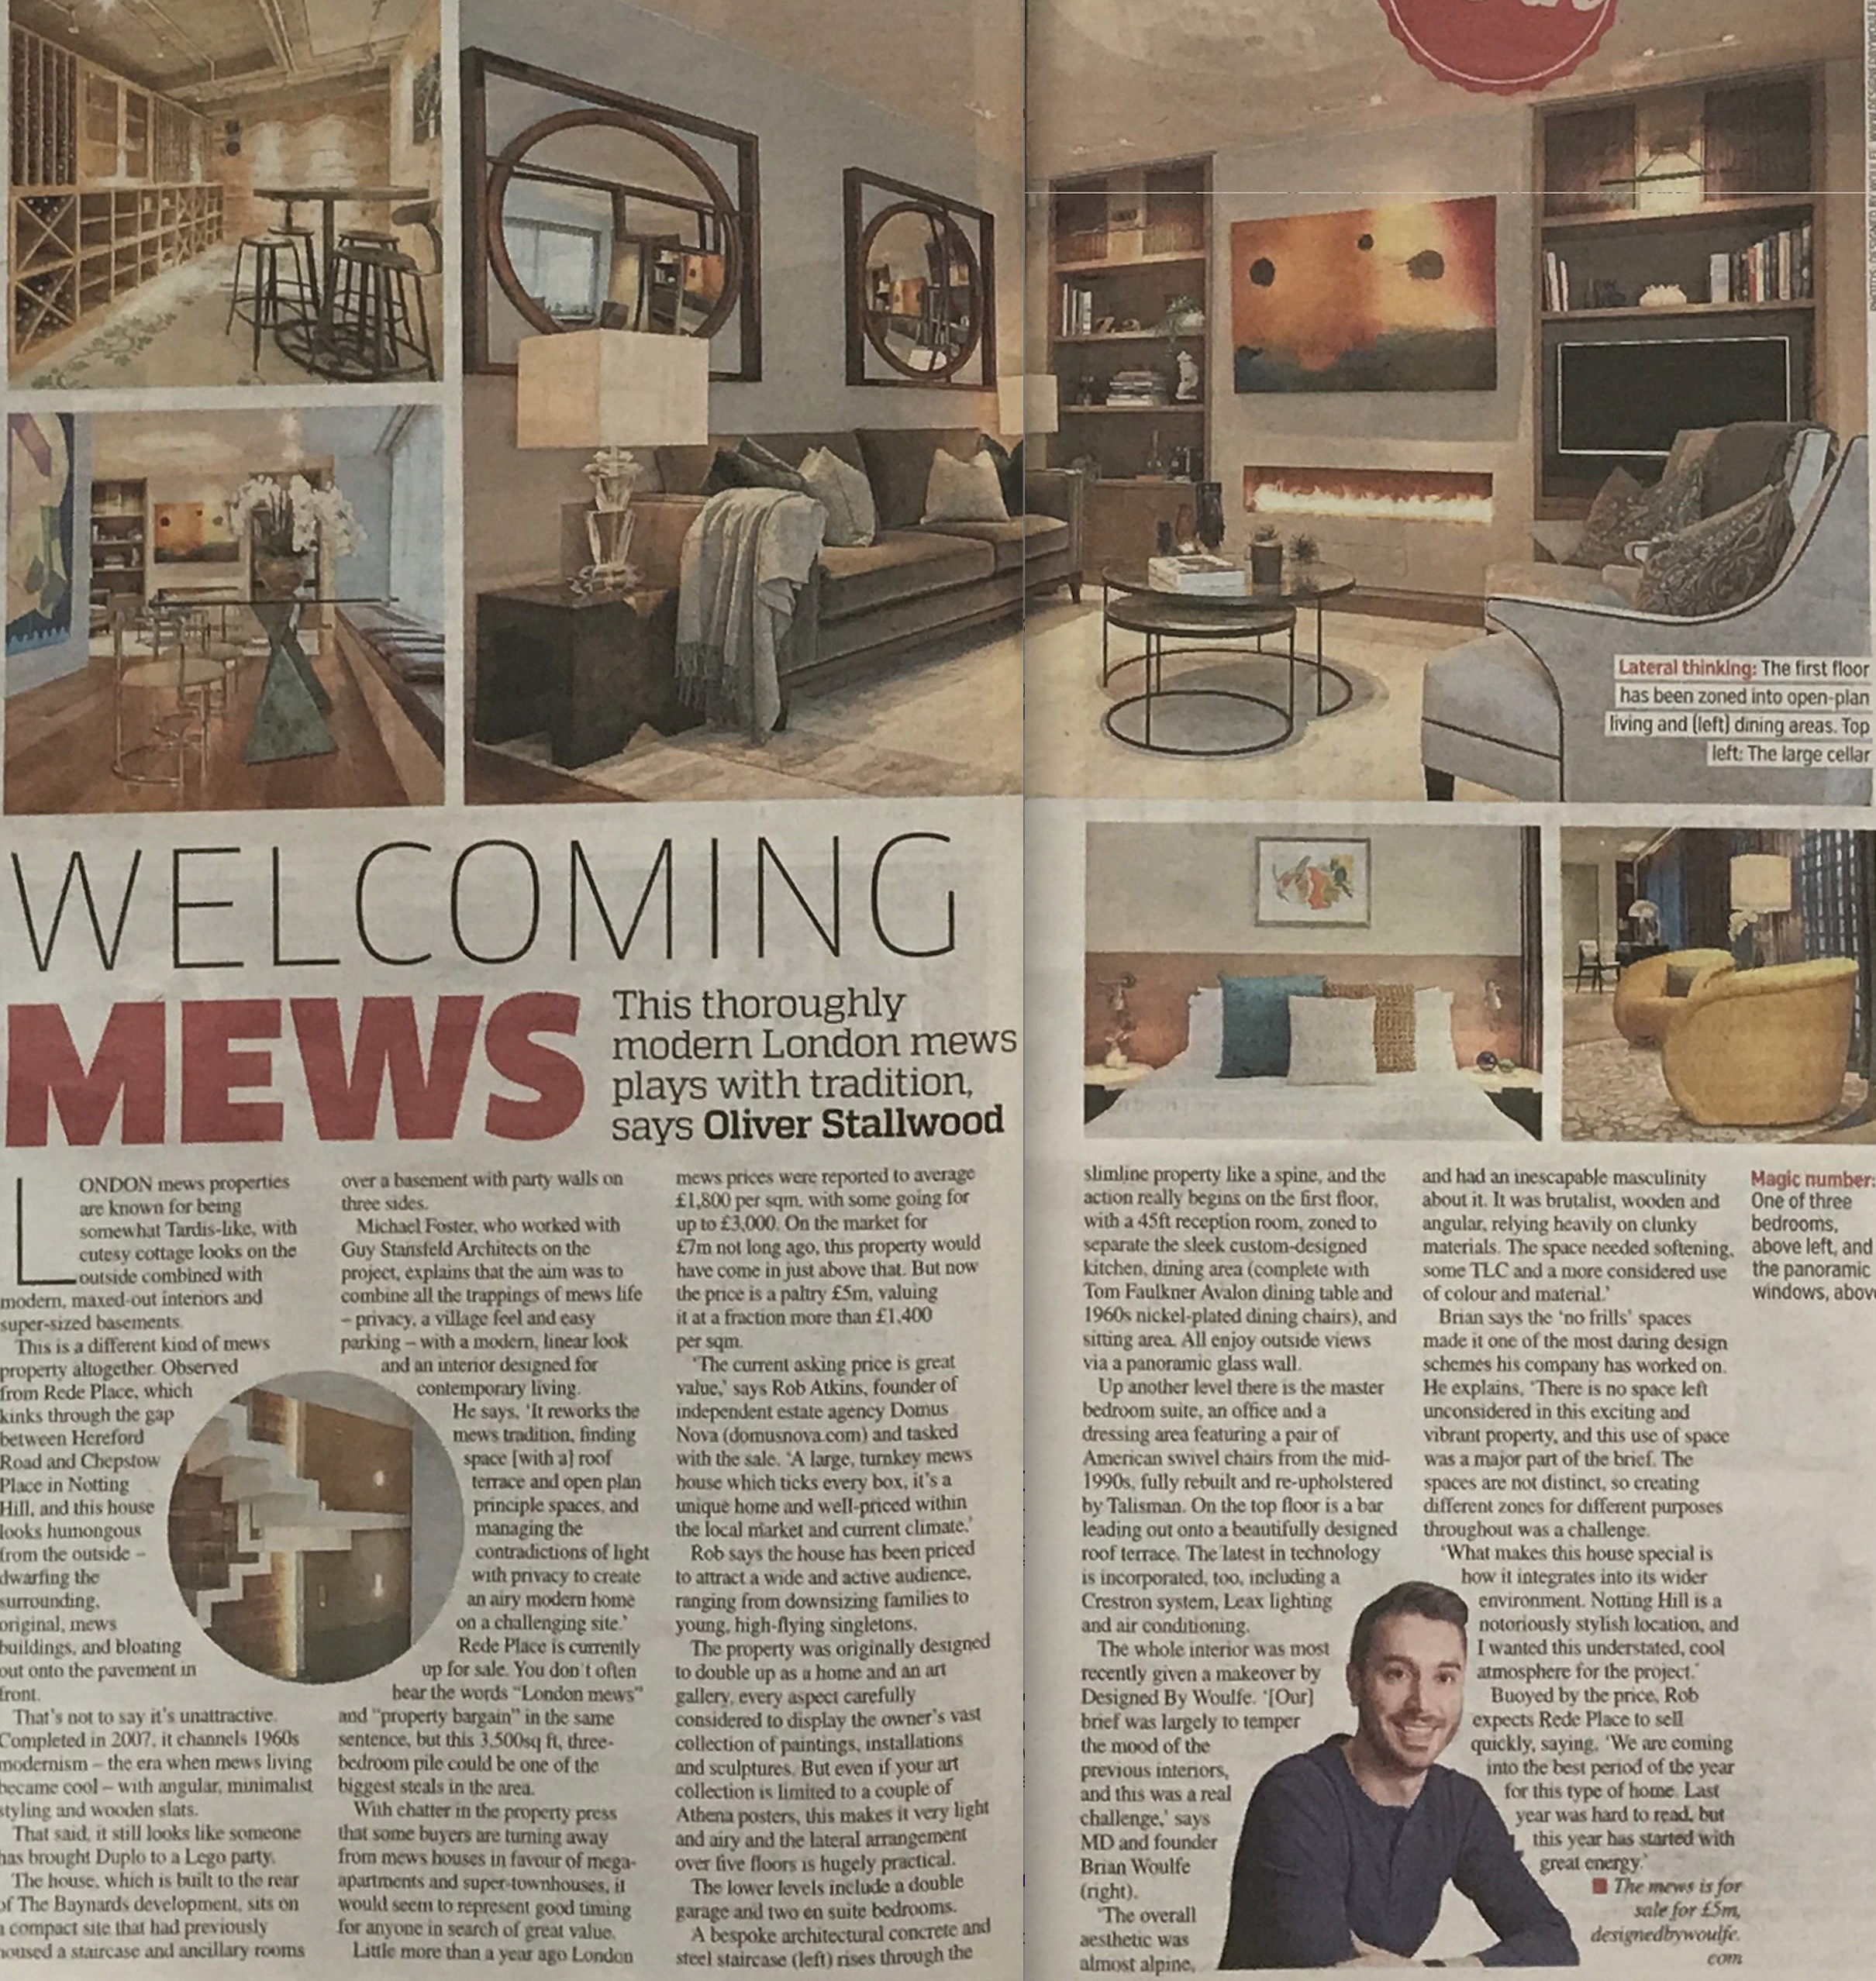 Designed by Woulfe, Metro UK, Property Pages, Brian Woulfe Interior Designer